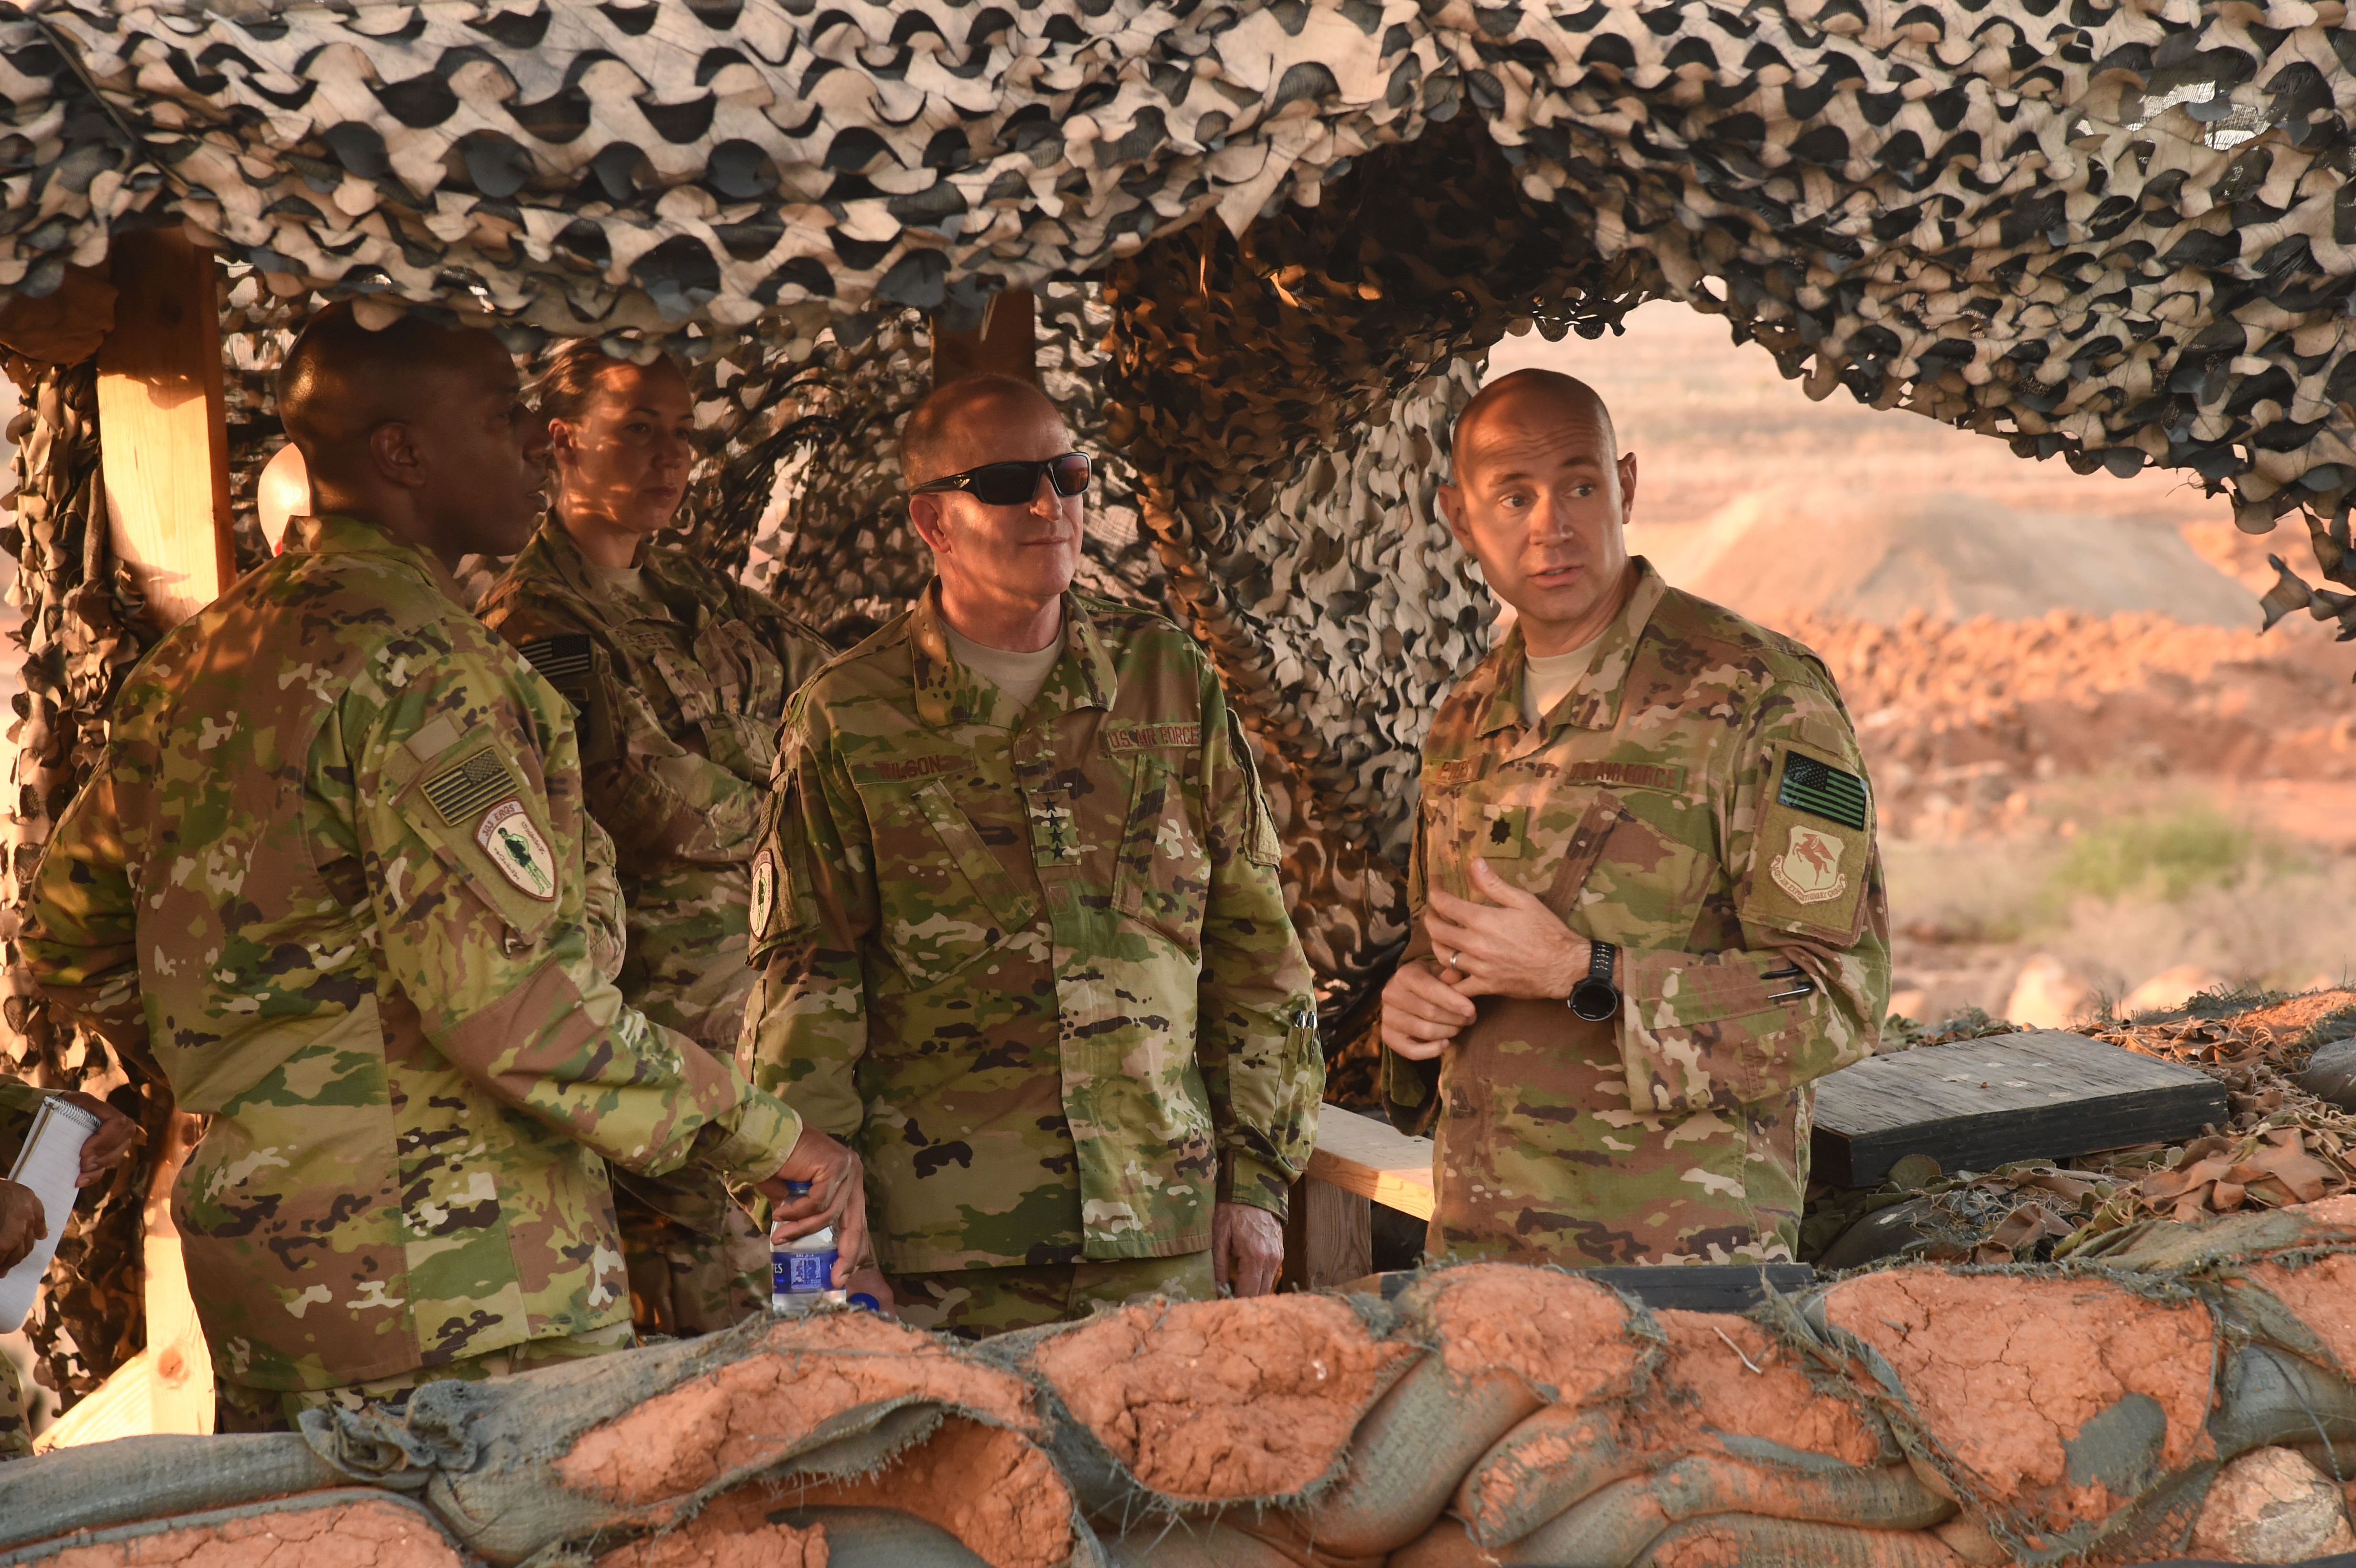 U.S. Air Force Chief Master Sgt. of the Air Force Kaleth Wright and U.S. Air Force Vice Chief of Staff Gen. Stephen Wilson receive a brief from Lt. Col. Joshua Pyers, commander 870th Air Expeditionary Squadron, right, during a visit to an airfield near Camp Lemonnier, Djibouti, April 11, 2017. Wilson visited CJTF-HOA and other tenant commands with Wright to gain a better understanding of Air Force integration and missions in the U.S. Africa Command area of responsibility. (U.S. Air National Guard photo by Staff Sgt. Penny Snoozy)